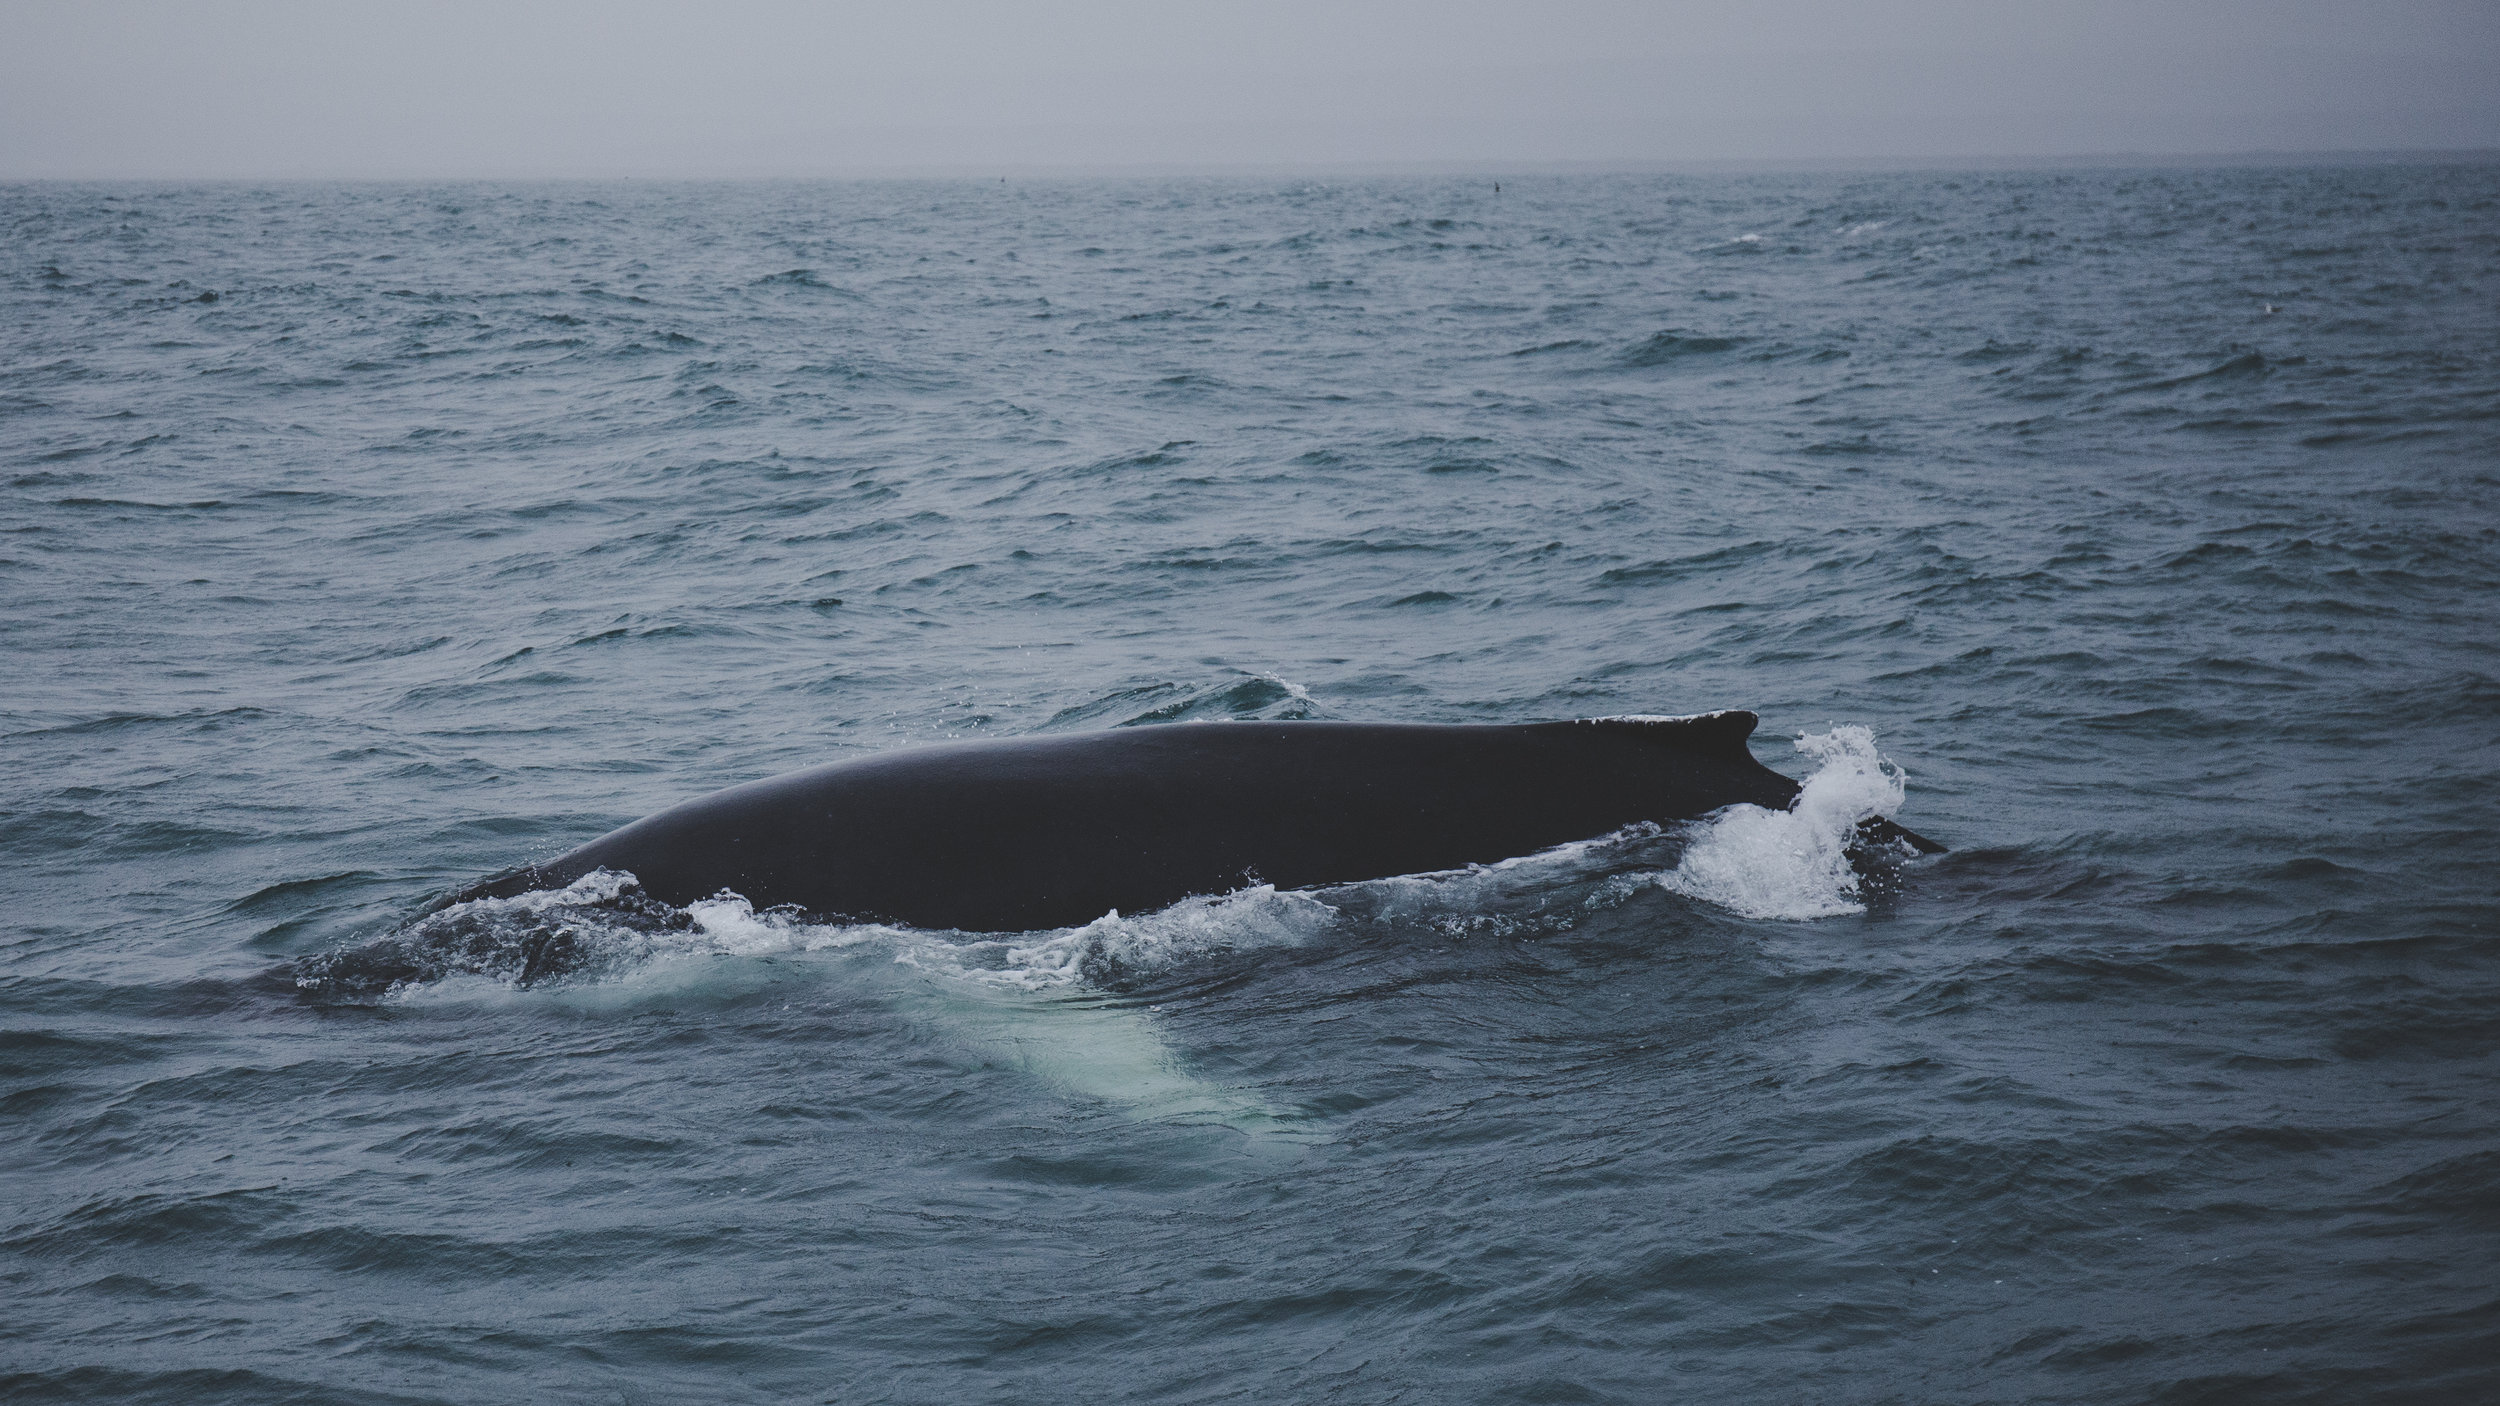 We saw this beast in a whale watching tour in Husavik.